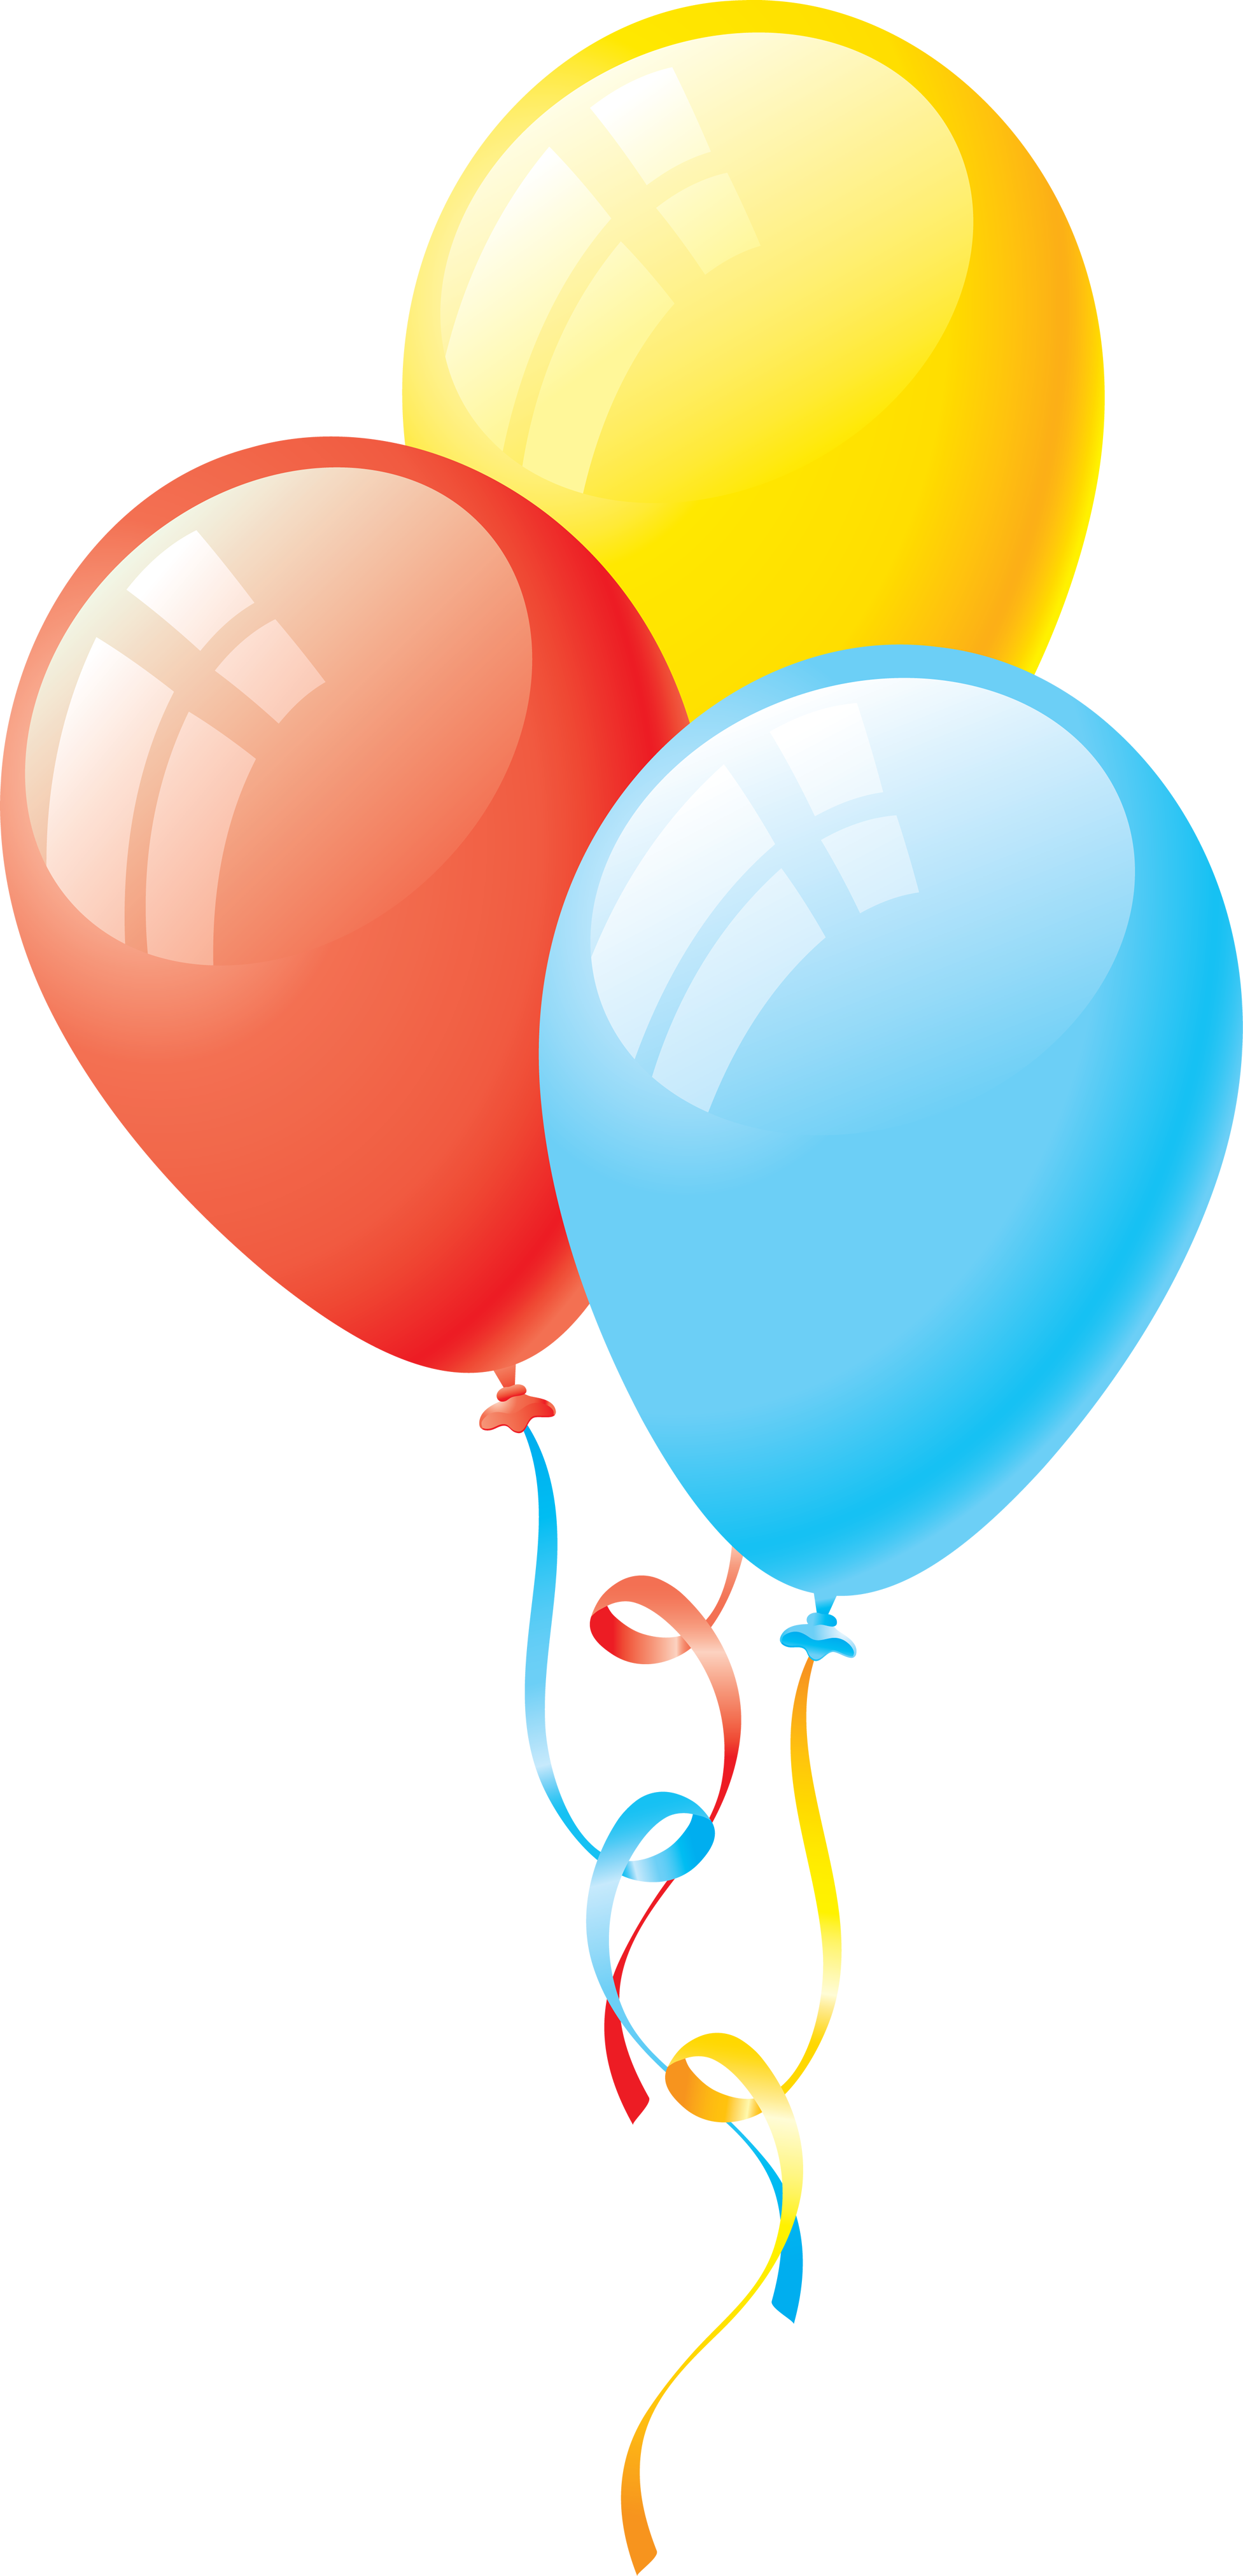 Png balloon free icons. Surprise clipart birthday ballon